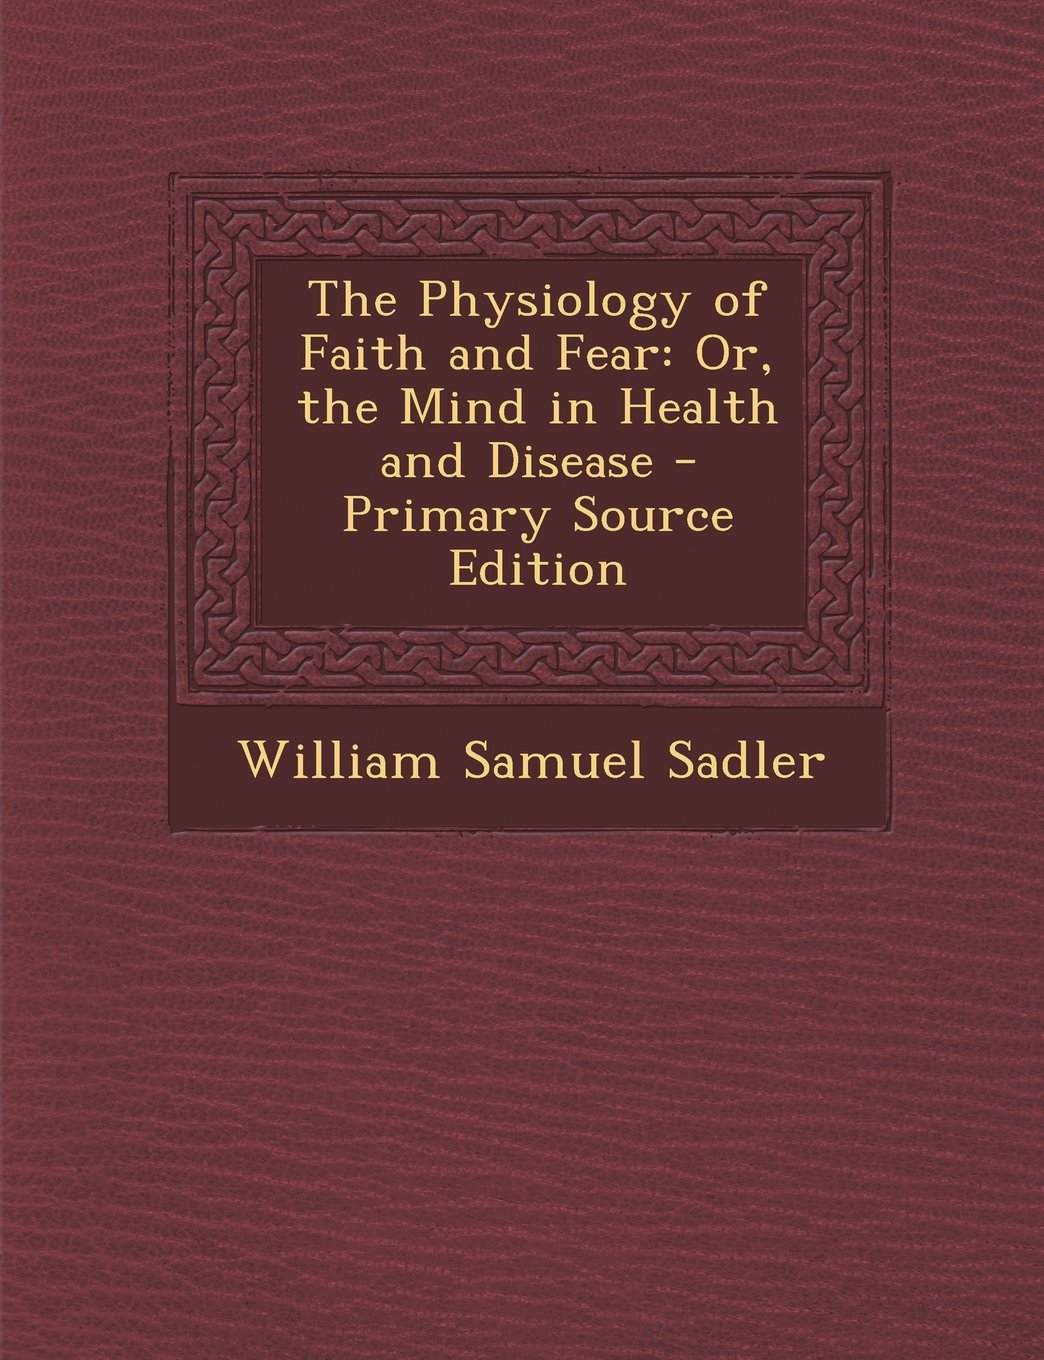 Read Online The Physiology of Faith and Fear: Or, the Mind in Health and Disease - Primary Source Edition ebook